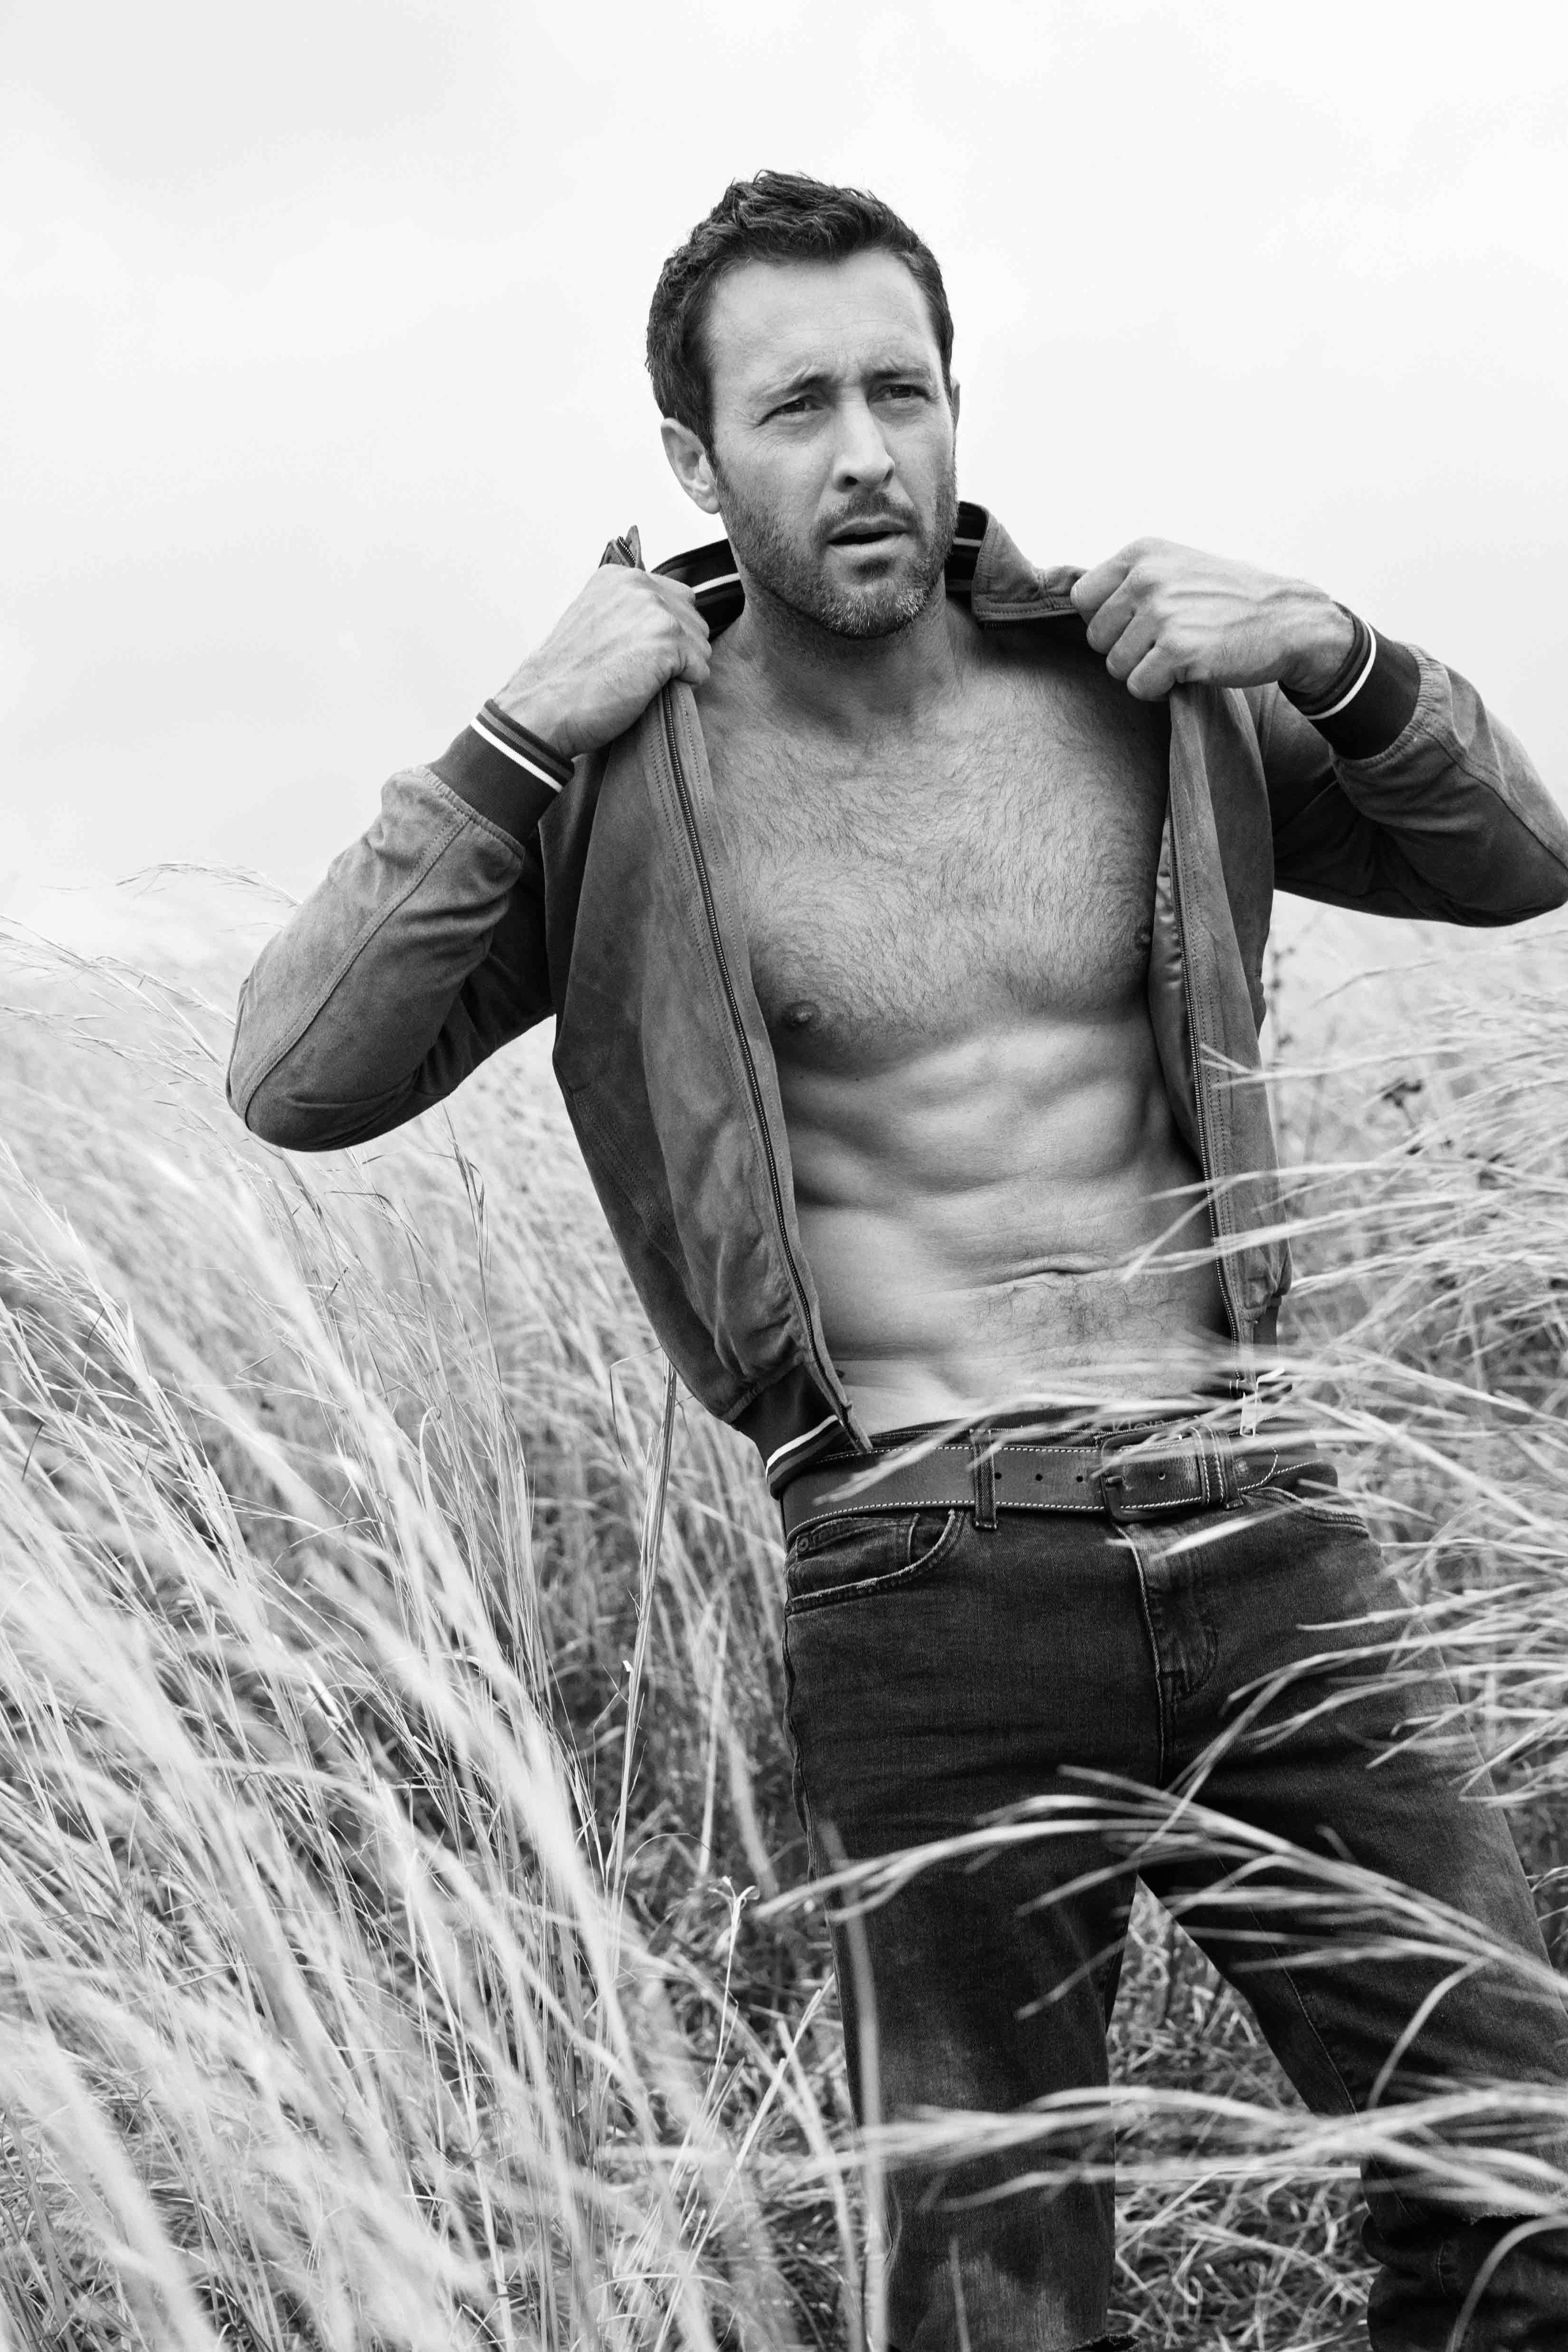 Black and white photo of Alex O'Loughlin shirtless.